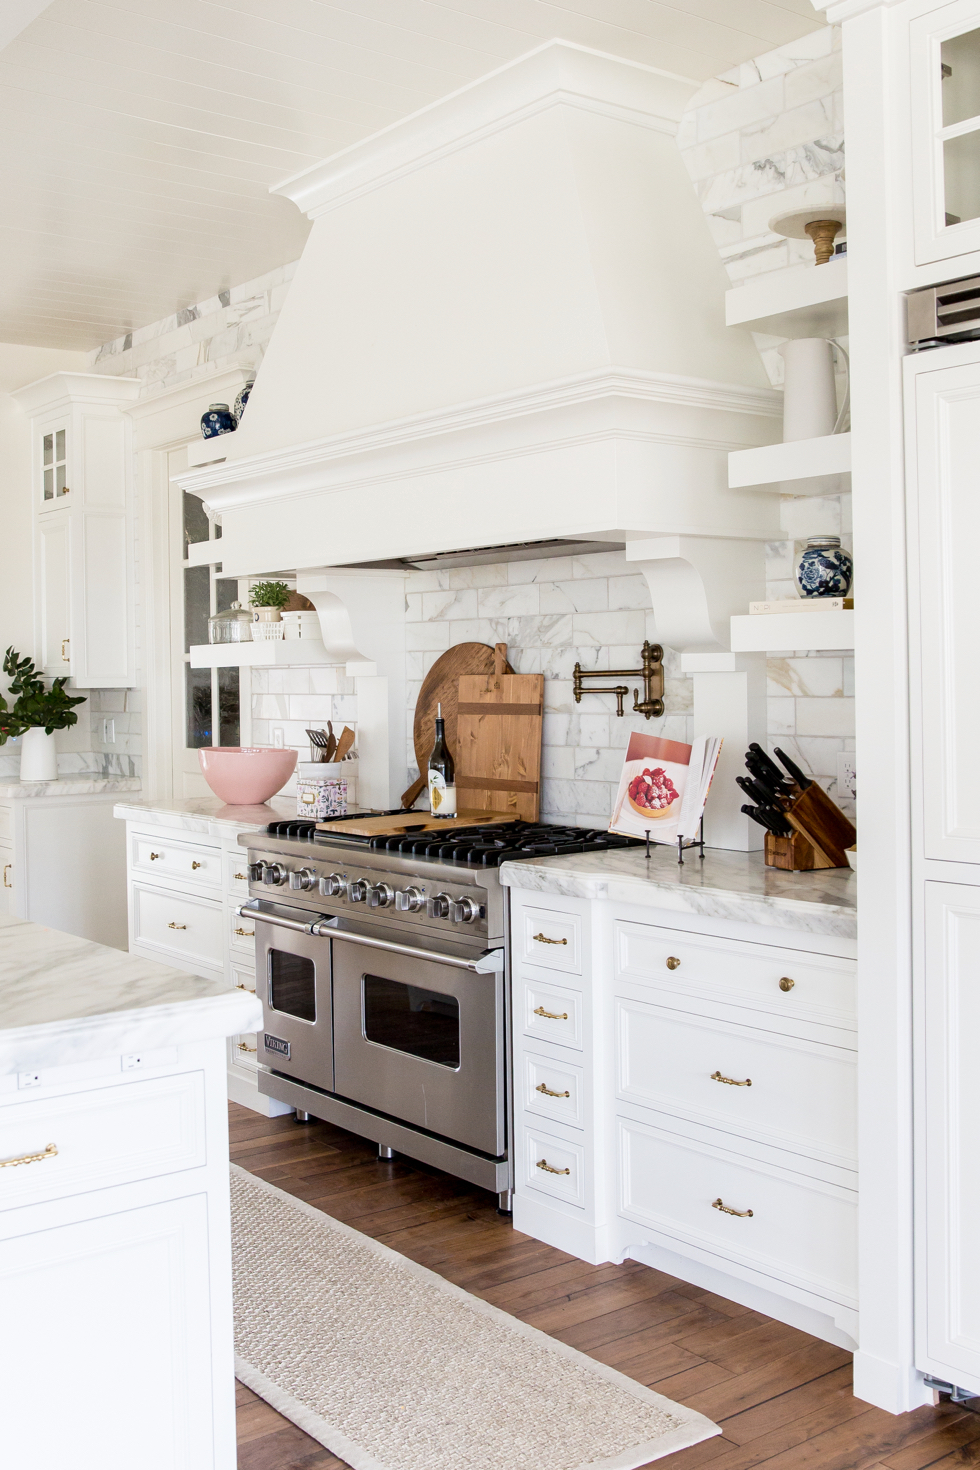 rach parcell kitchen reveal